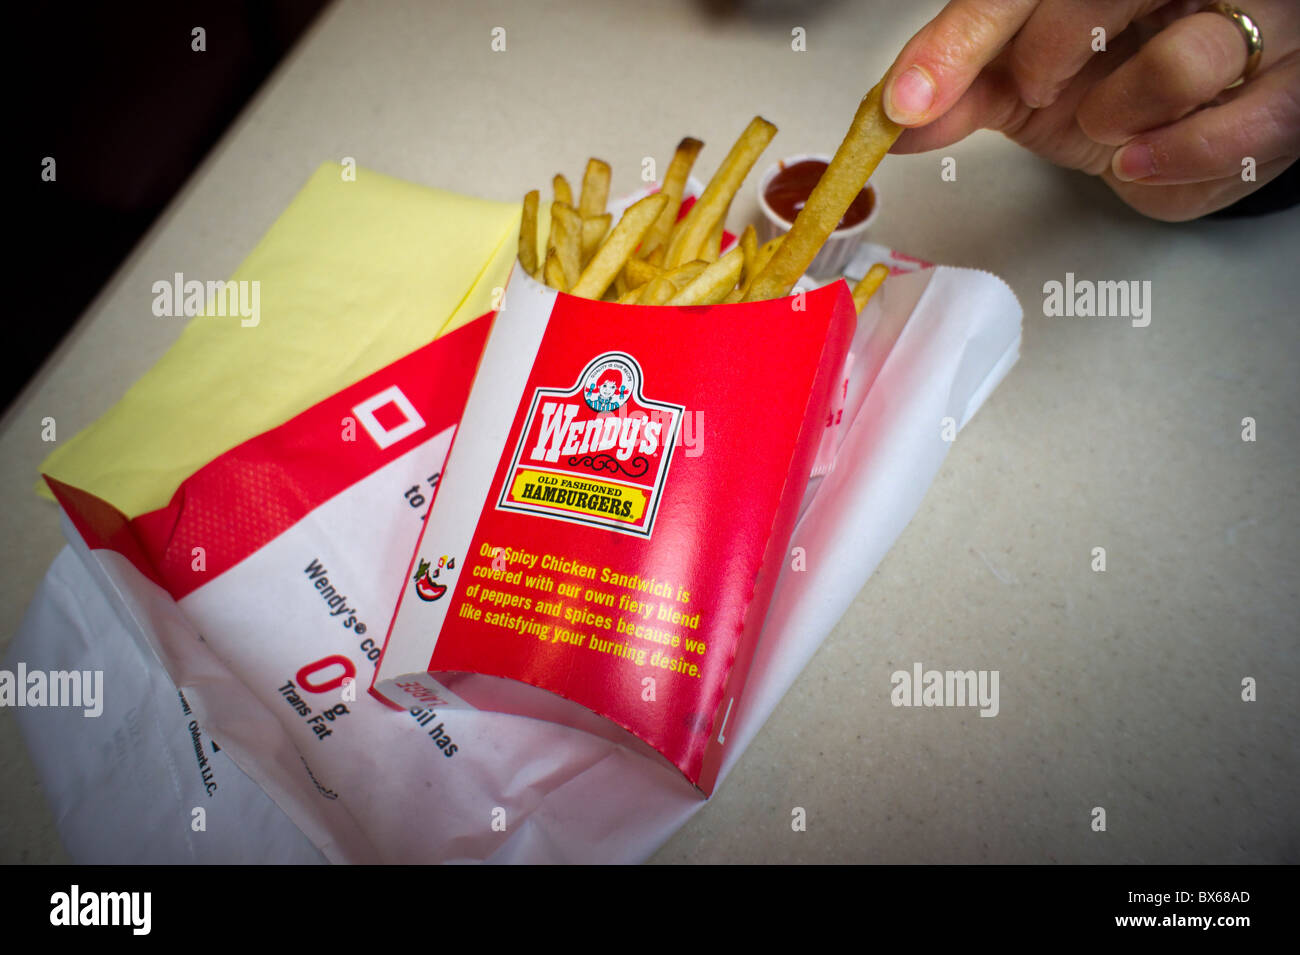 A Large Serving Of Wendys New French Fries